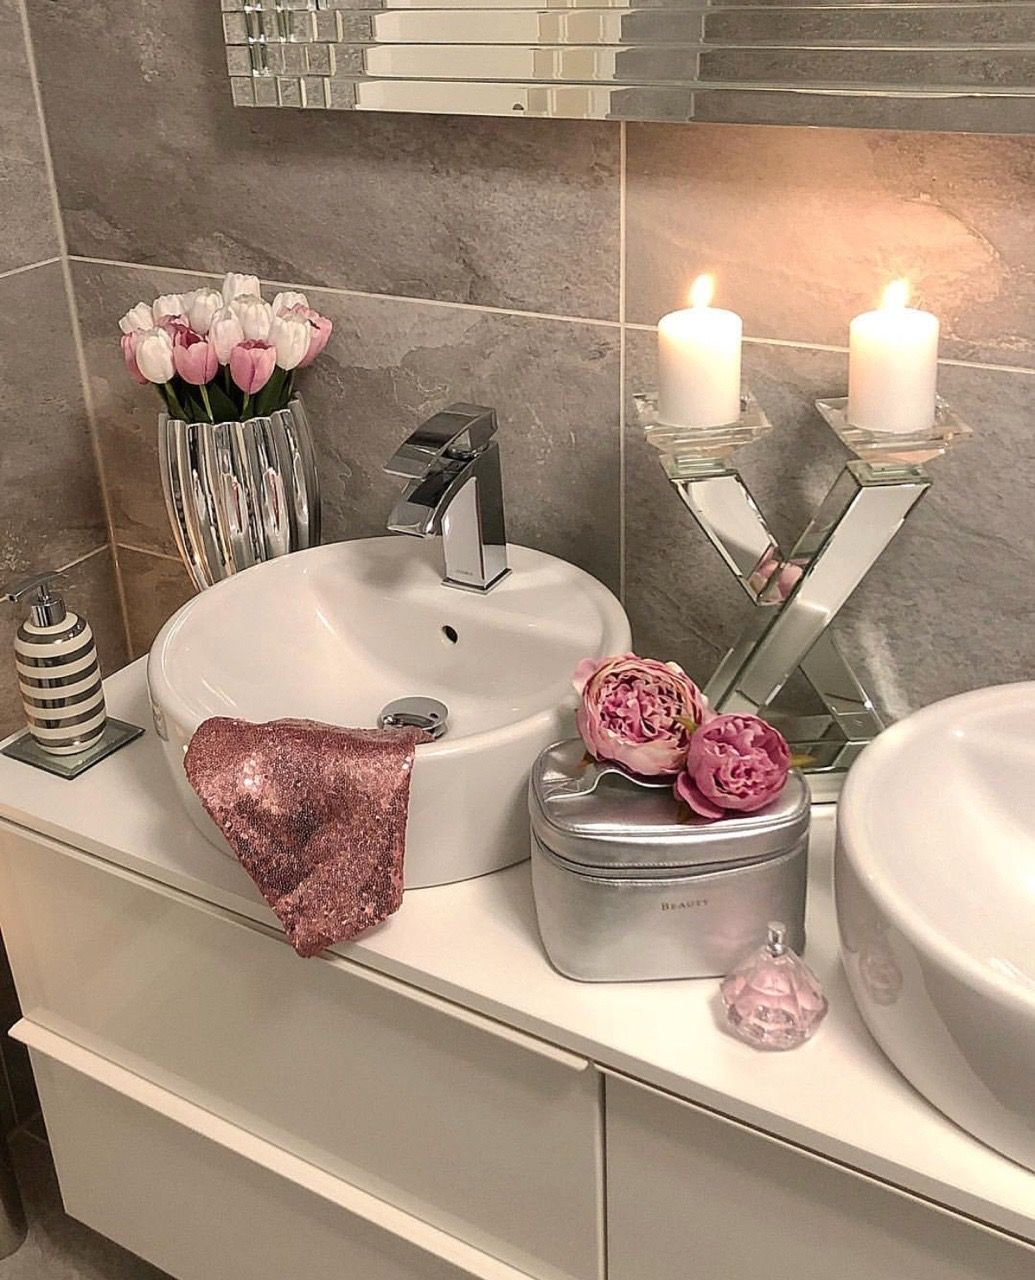 Pin by Astraea Roberts on Girly Decor | Pink bathroom ...